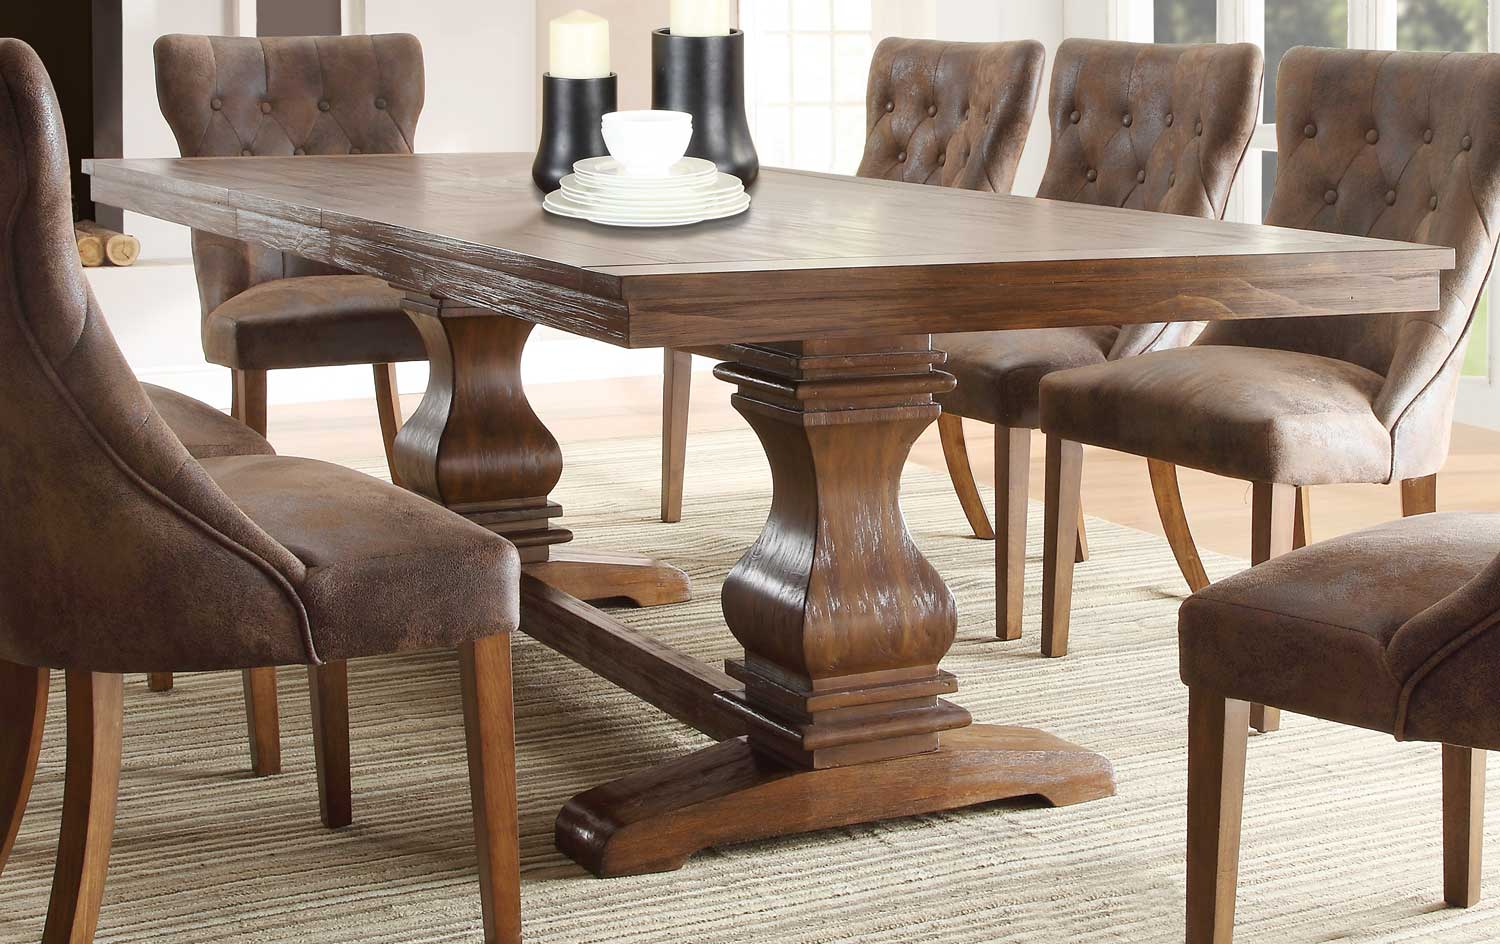 Upcycled Dining Table Ideas